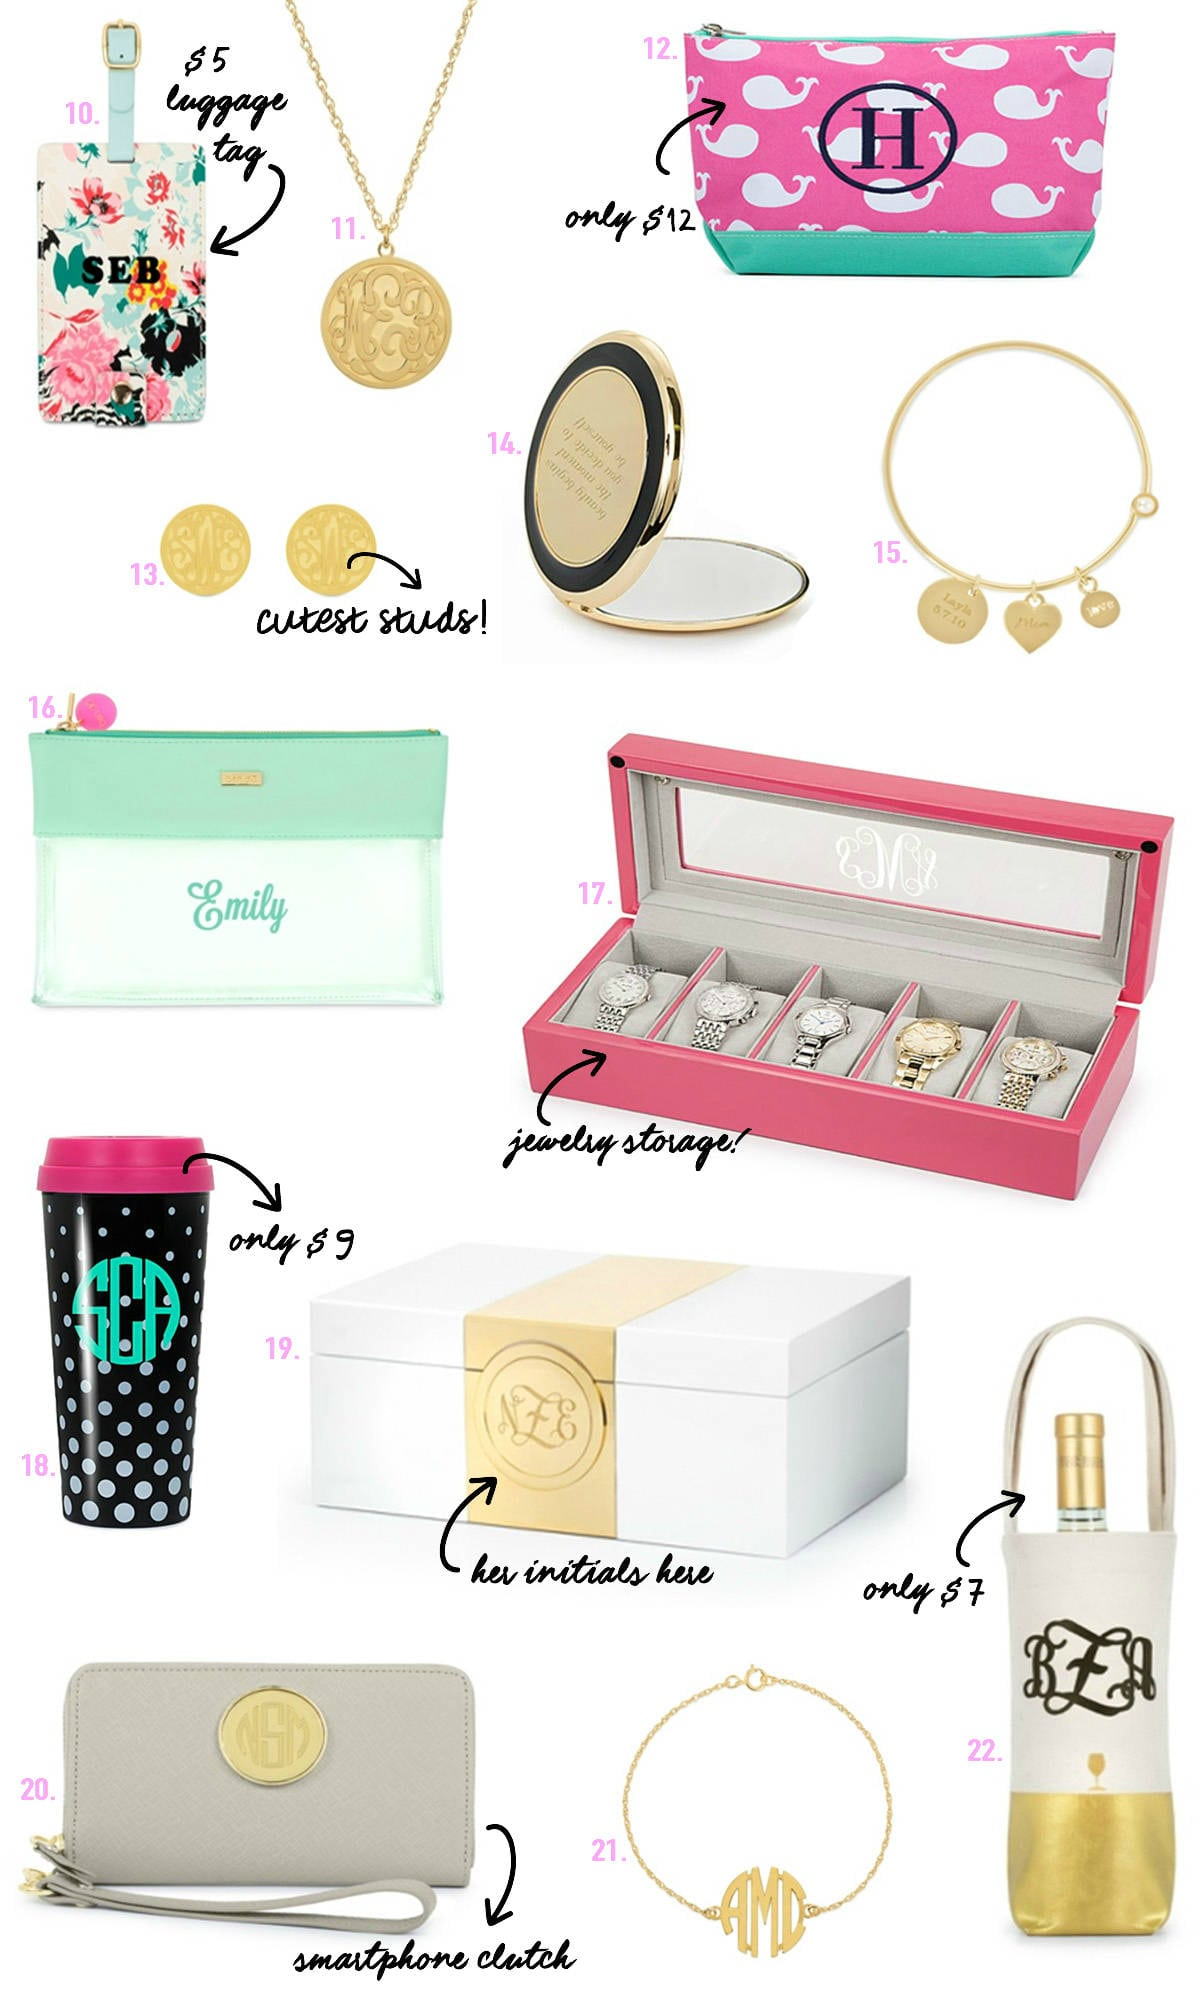 Mash Elle lifestyle blogger shares the best personalized gifts